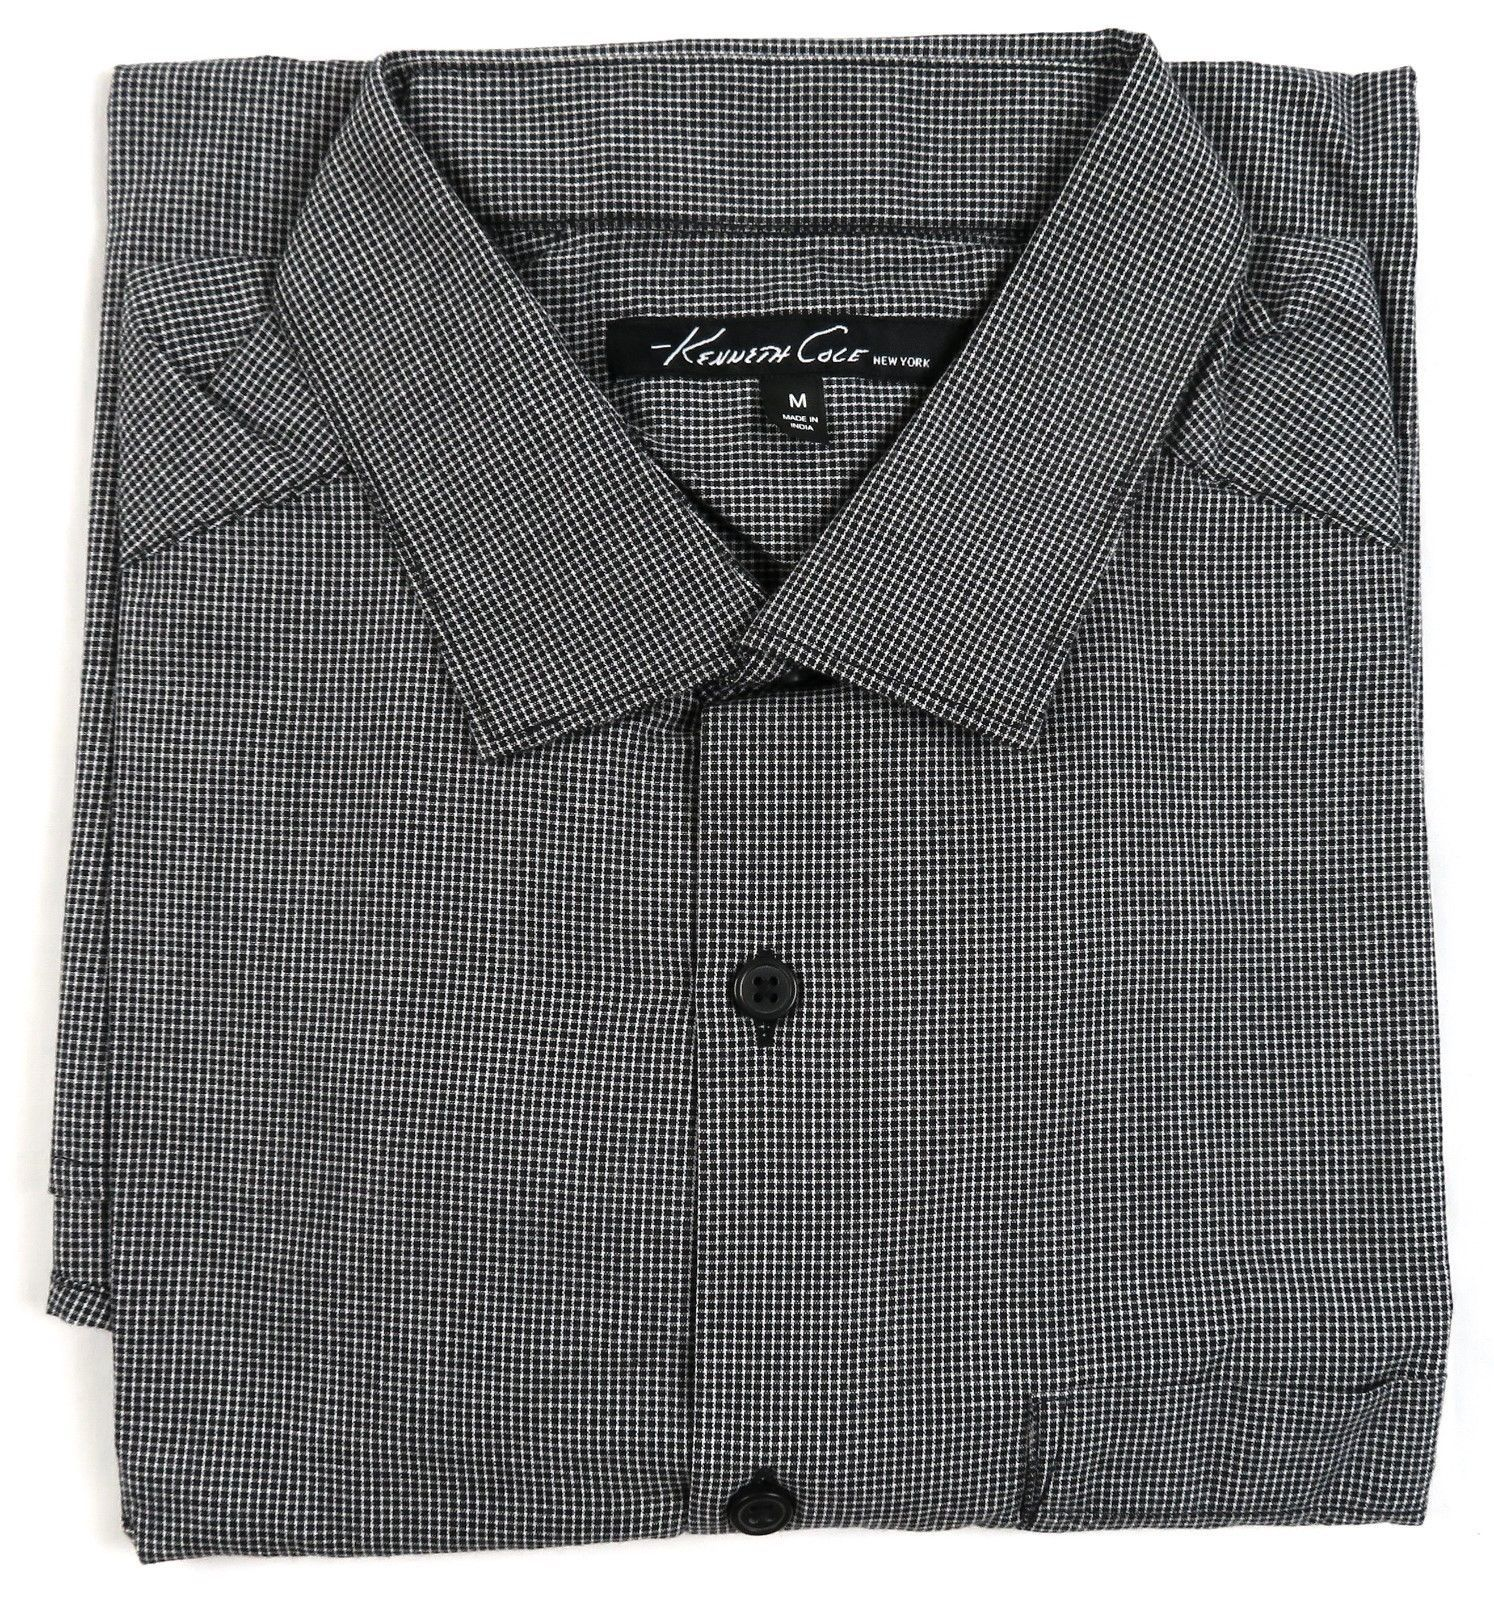 Kenneth Cole New York Shirt Men's Long Sleeve Button-down #28